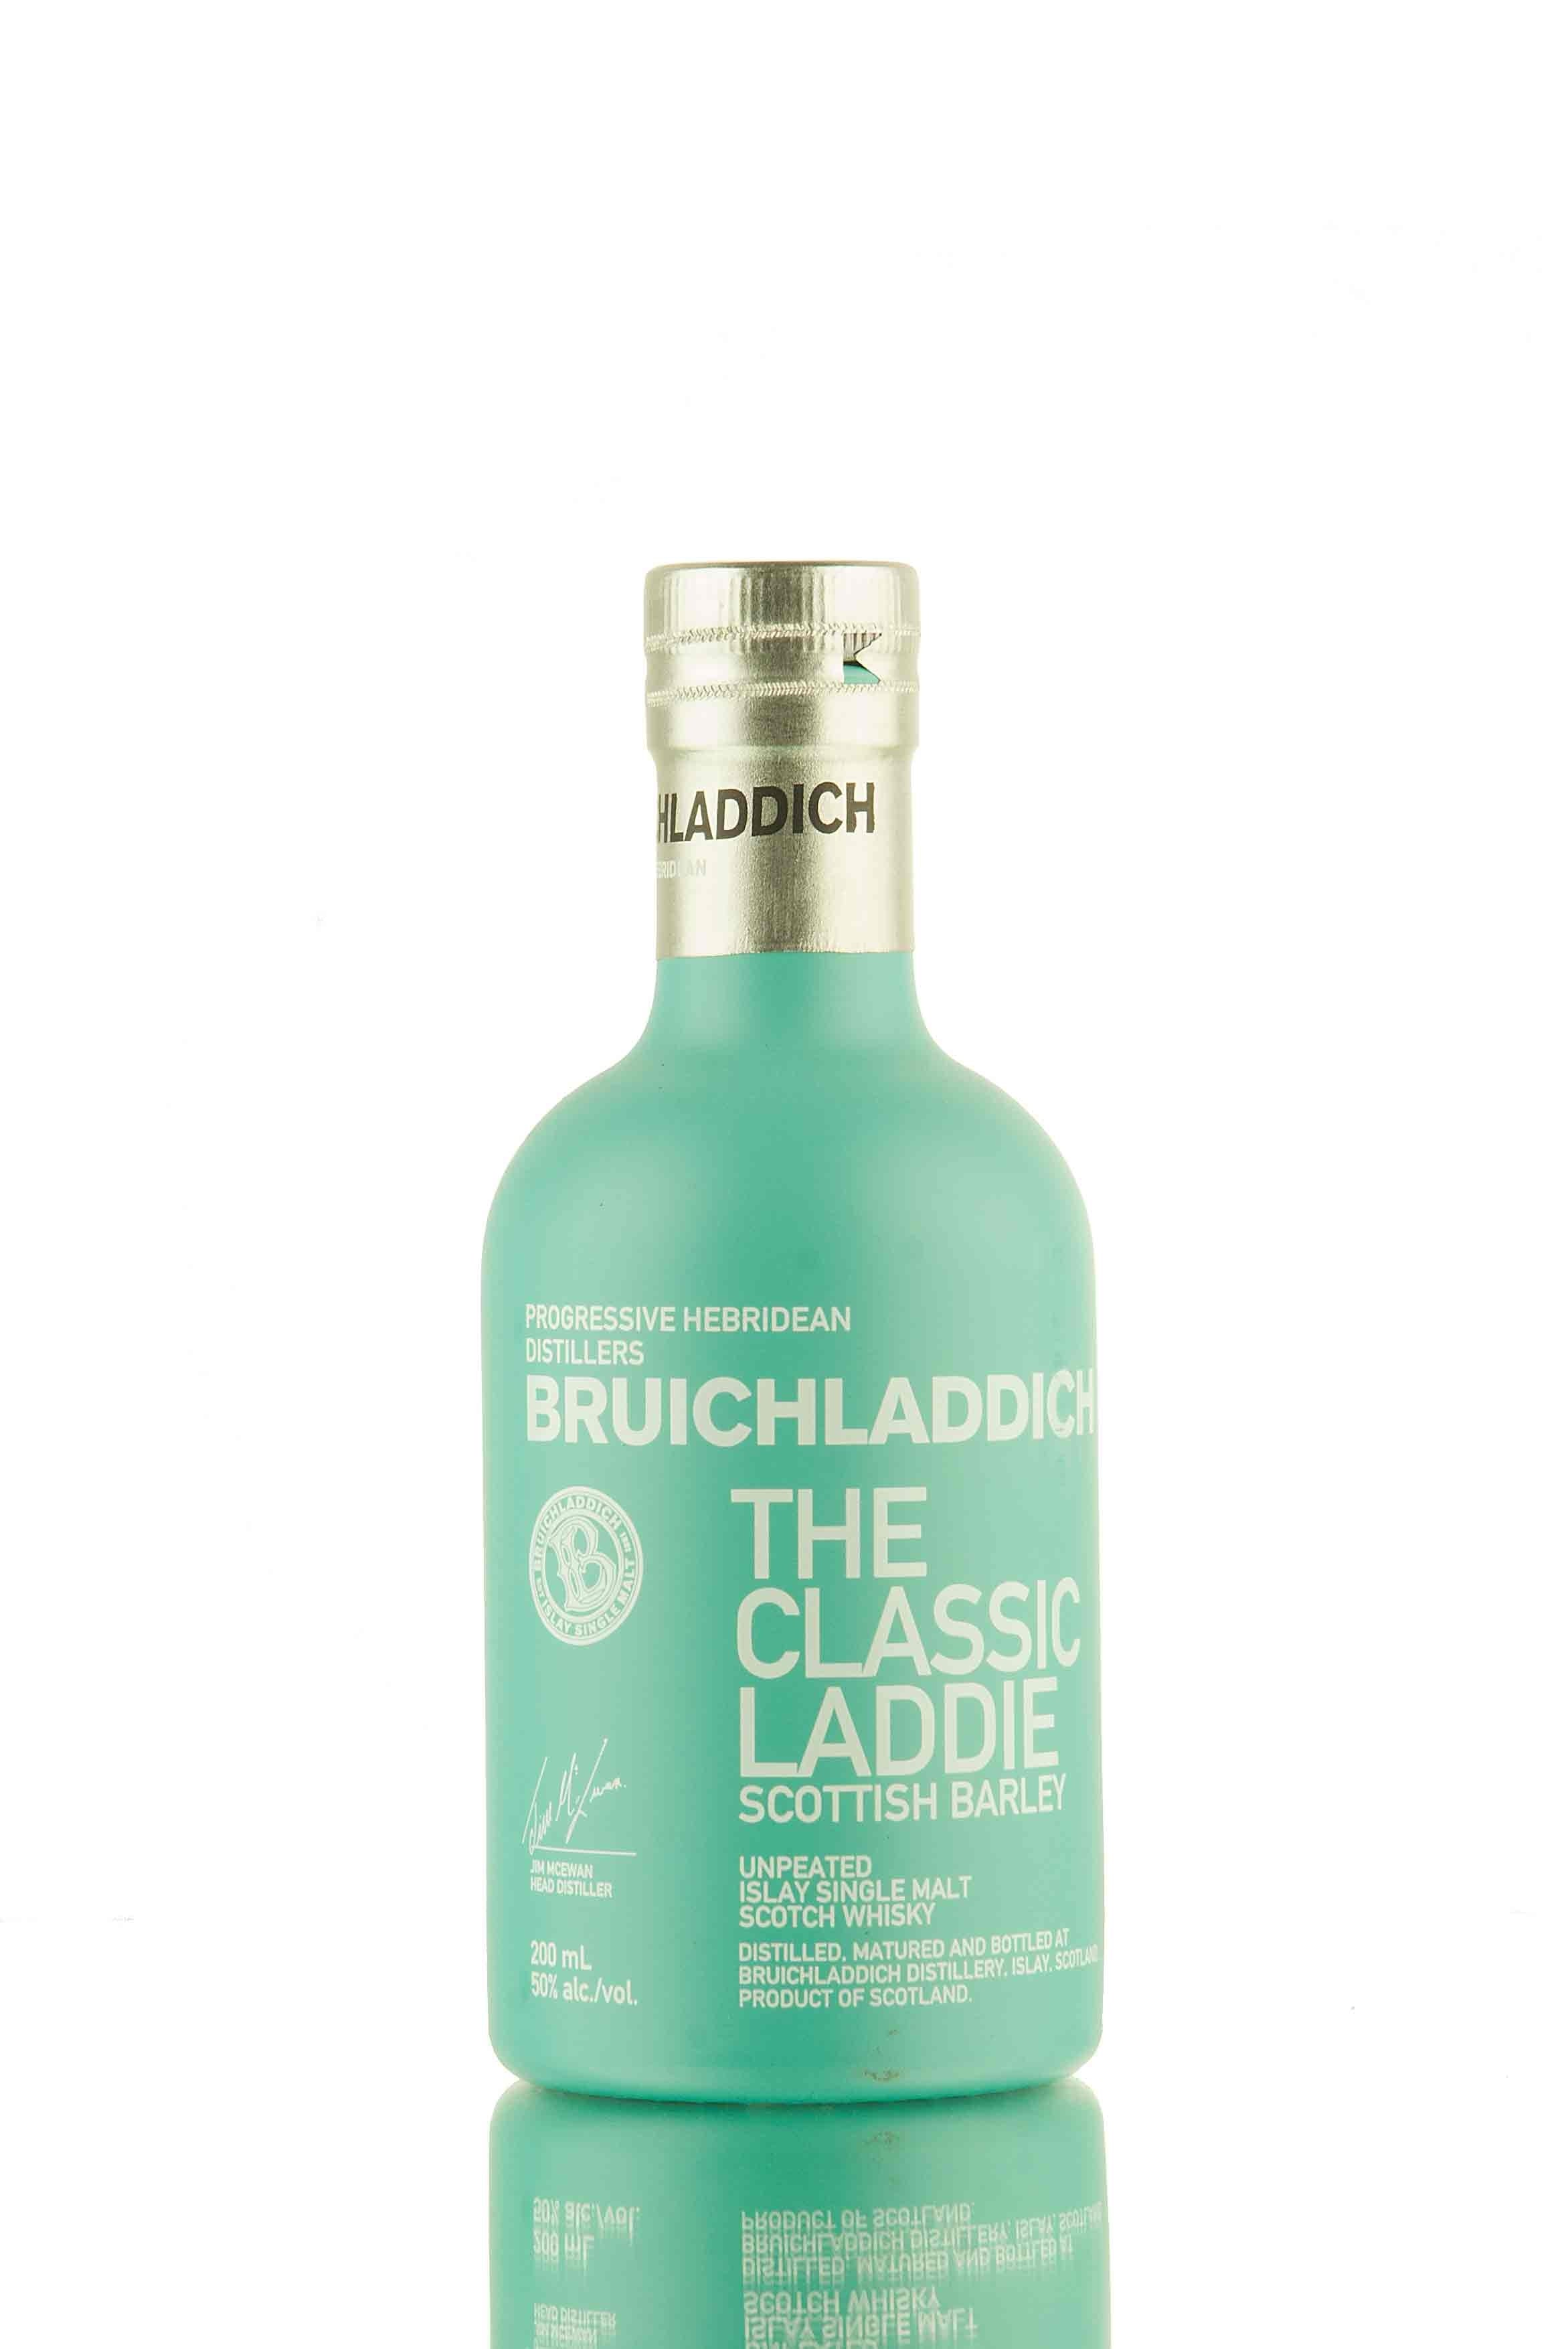 Bruichladdich Scottish Barley - The Classic Laddie | 20cl